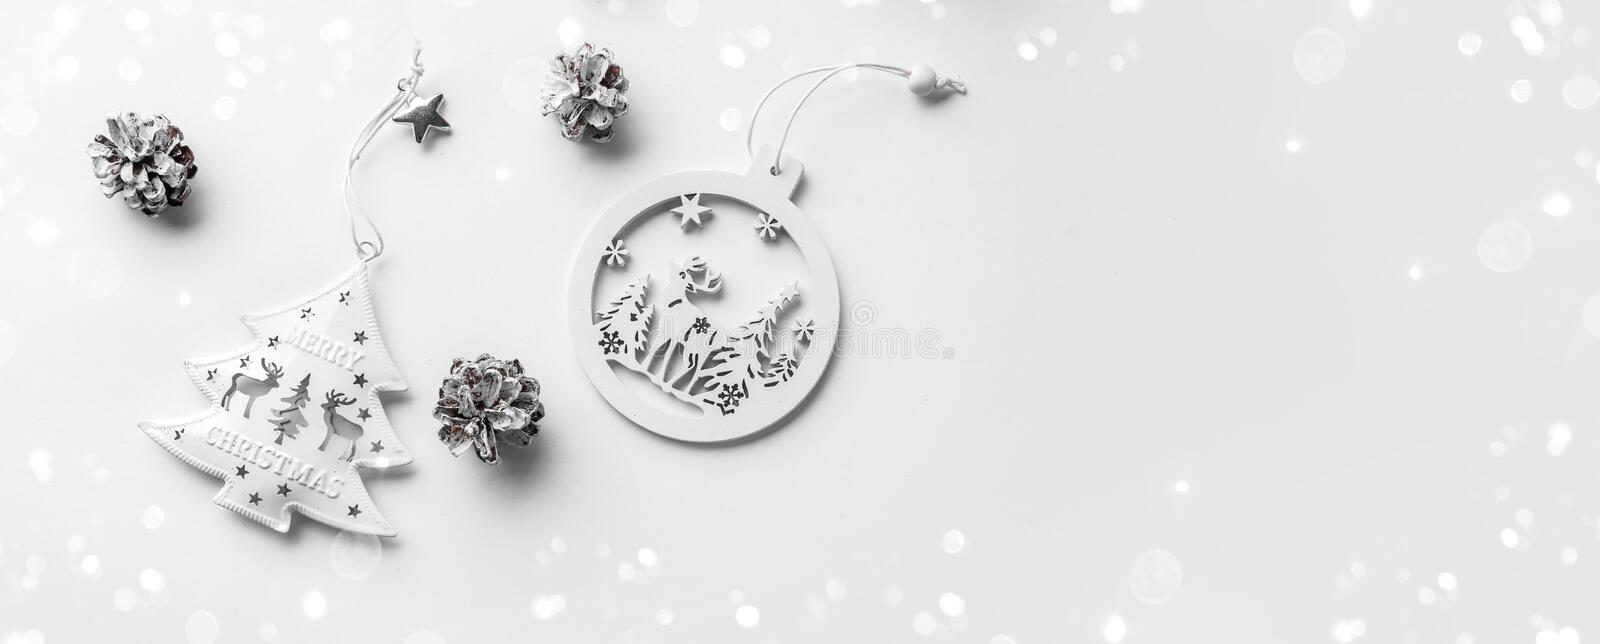 White Christmas decoration on white background with pine cones. Xmas and Happy New Year theme, bokeh, light. Flat lay, top view, wide composition royalty free stock image